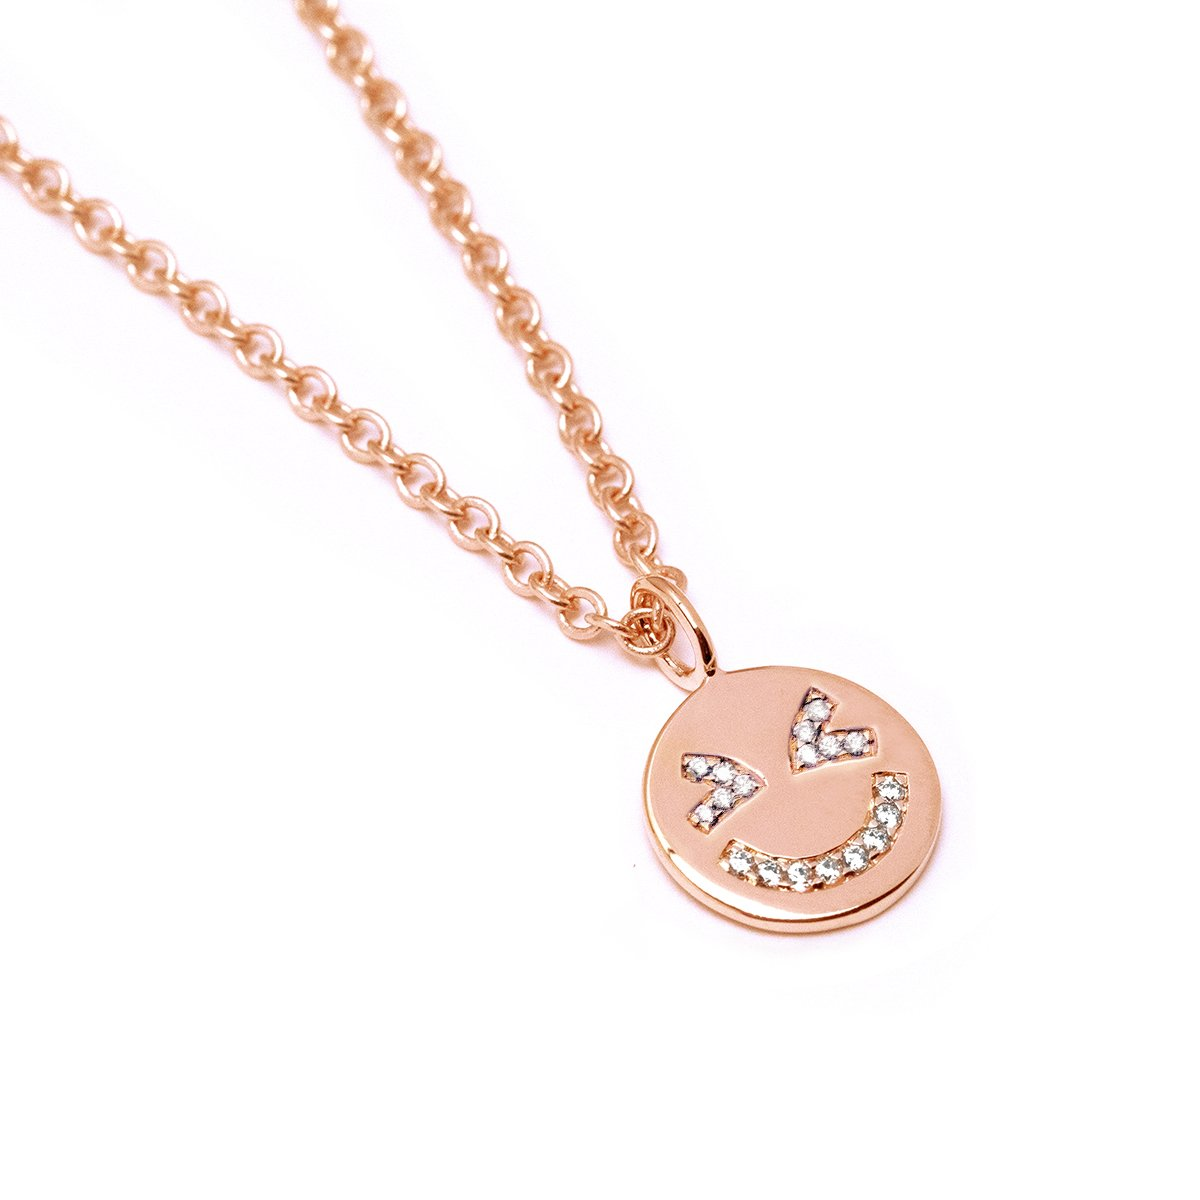 Laughing Face Necklace (Rose Gold) - Chainless Brain